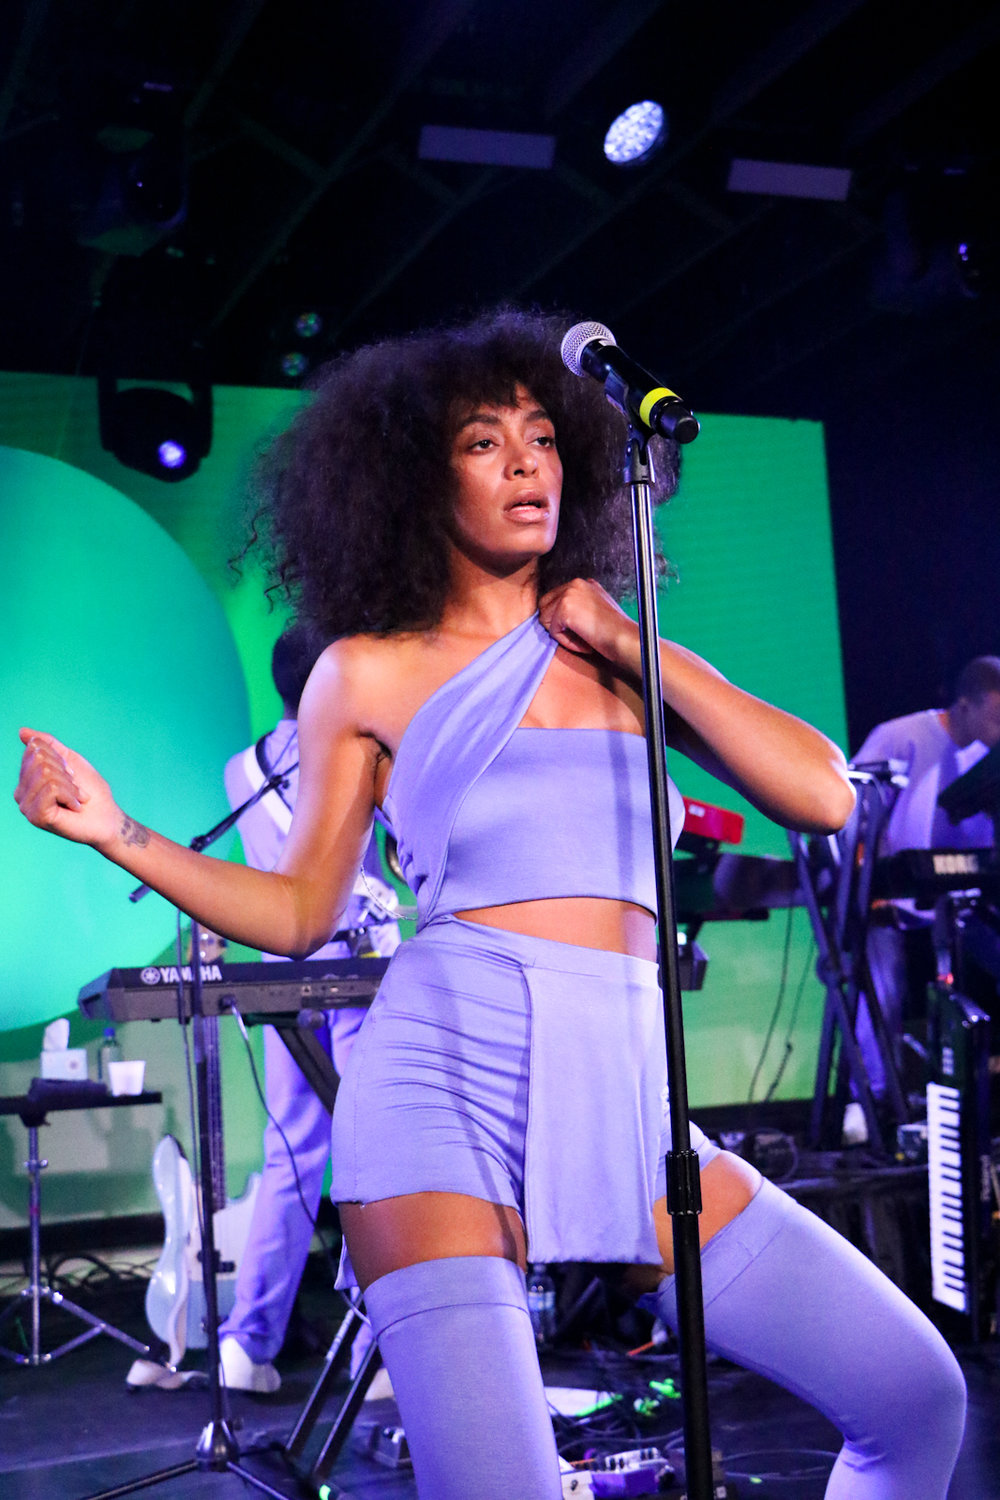 YouTube at Coppertank had killer shows at SXSW 2017 including Solange.